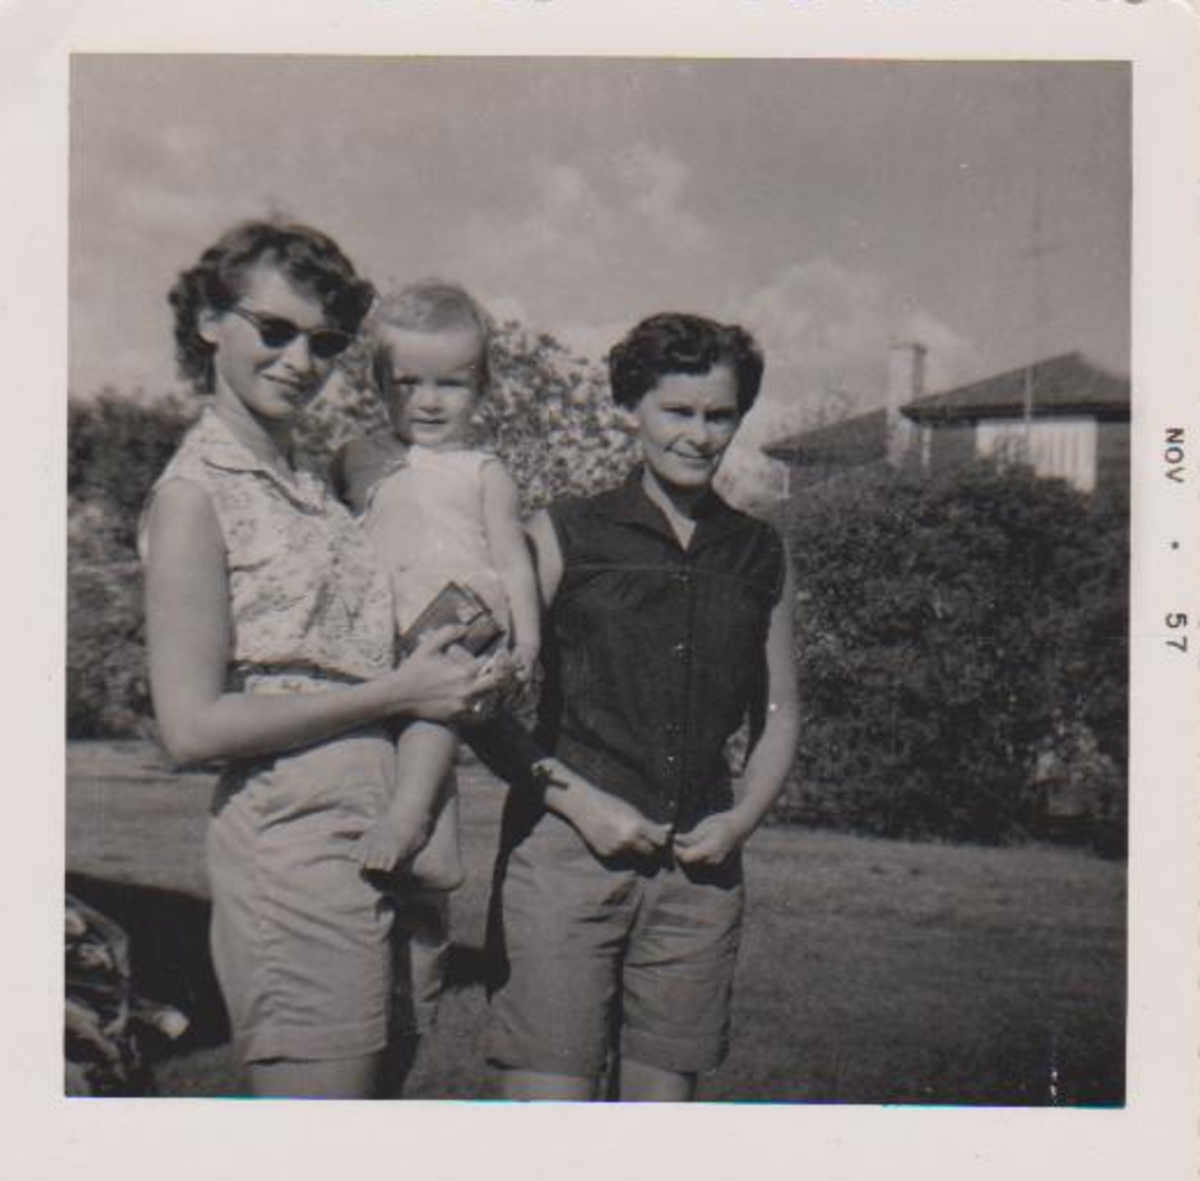 My mom, aunt and I at my grandparents